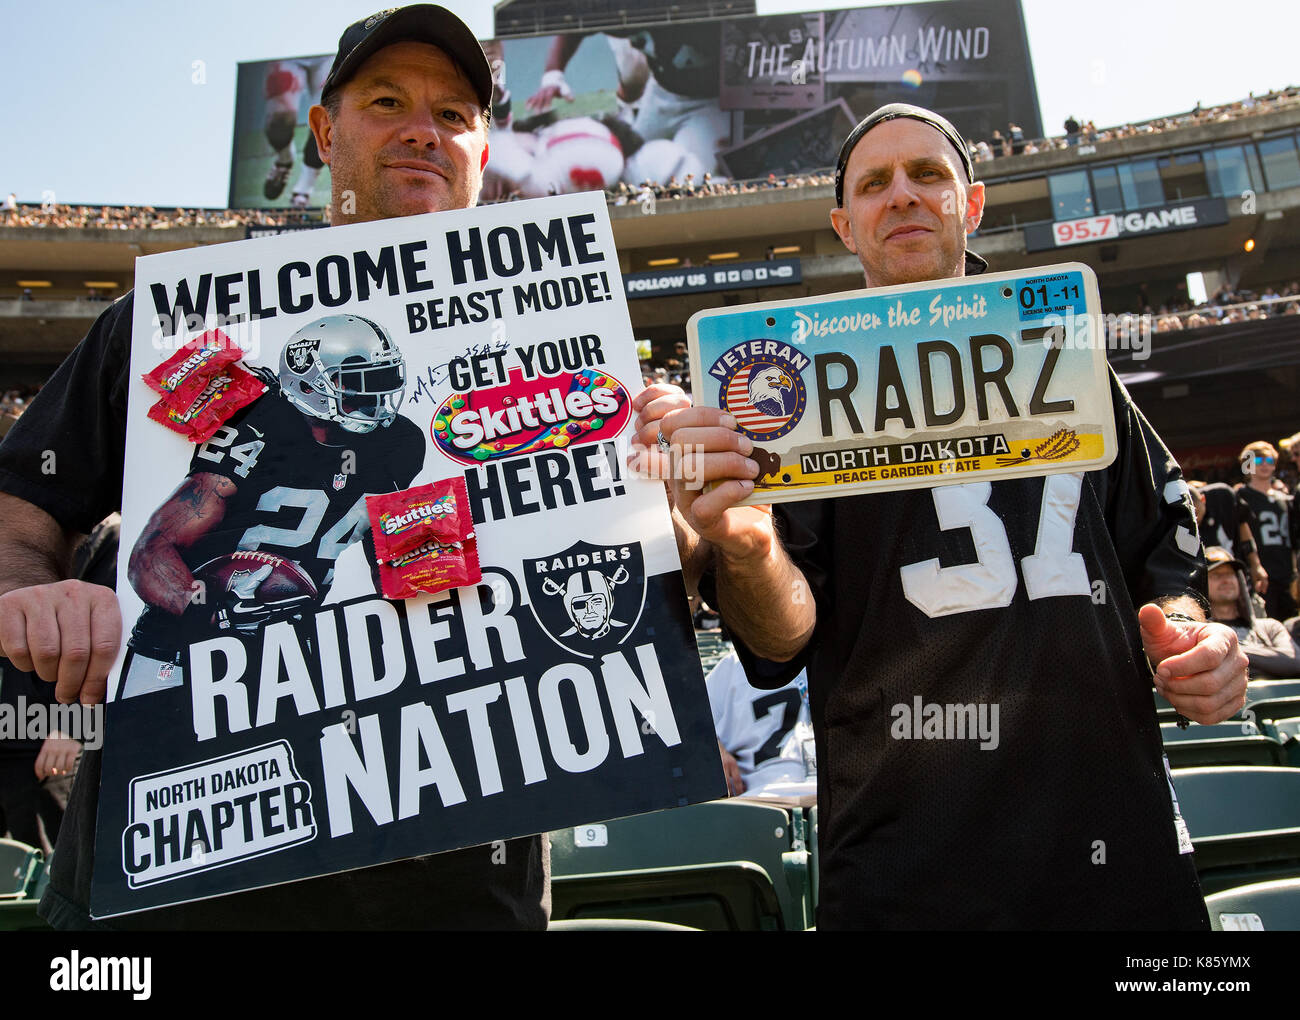 Oakland, California, USA. 17th Sep, 2017. Members of the Raider Nation (the official name for fans of the Oakland Raiders) before a NFL game between the New York Jets and the Oakland Raiders at the Oakland Coliseum in Oakland, California. Valerie Shoaps/CSM/Alamy Live News - Stock Image